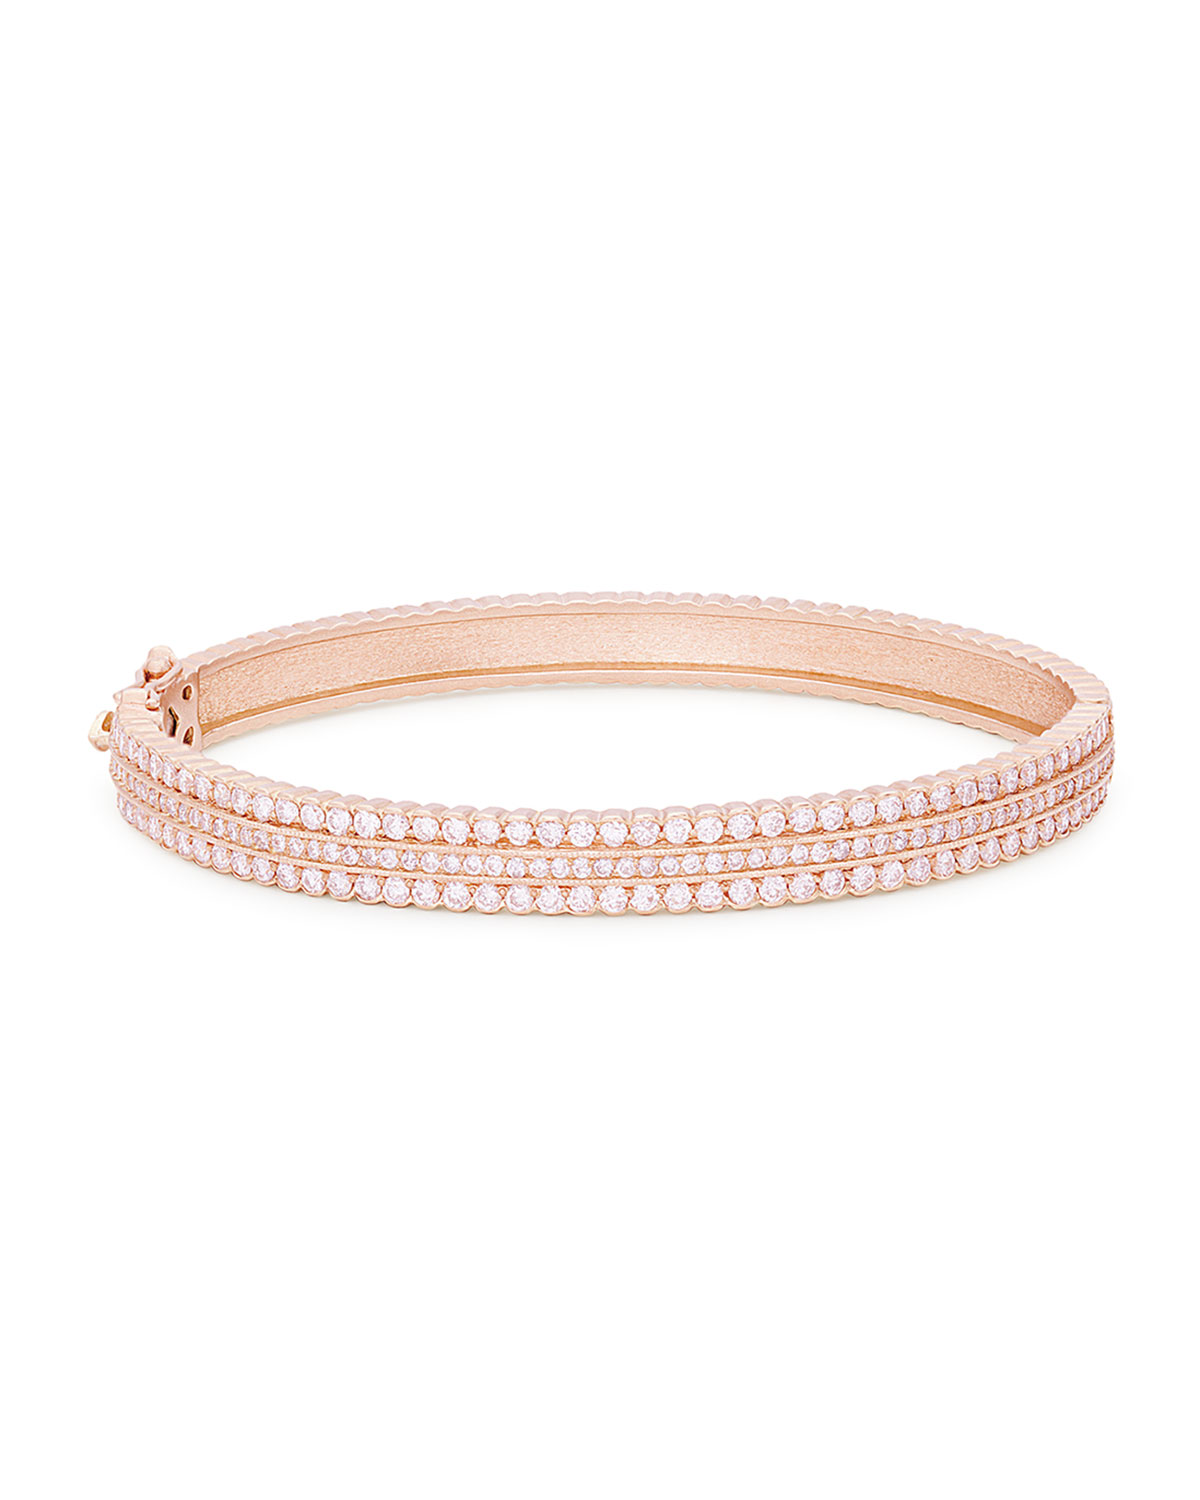 Jamie Wolf Hinged Scalloped White Diamond Bracelet in 18K Rose Gold